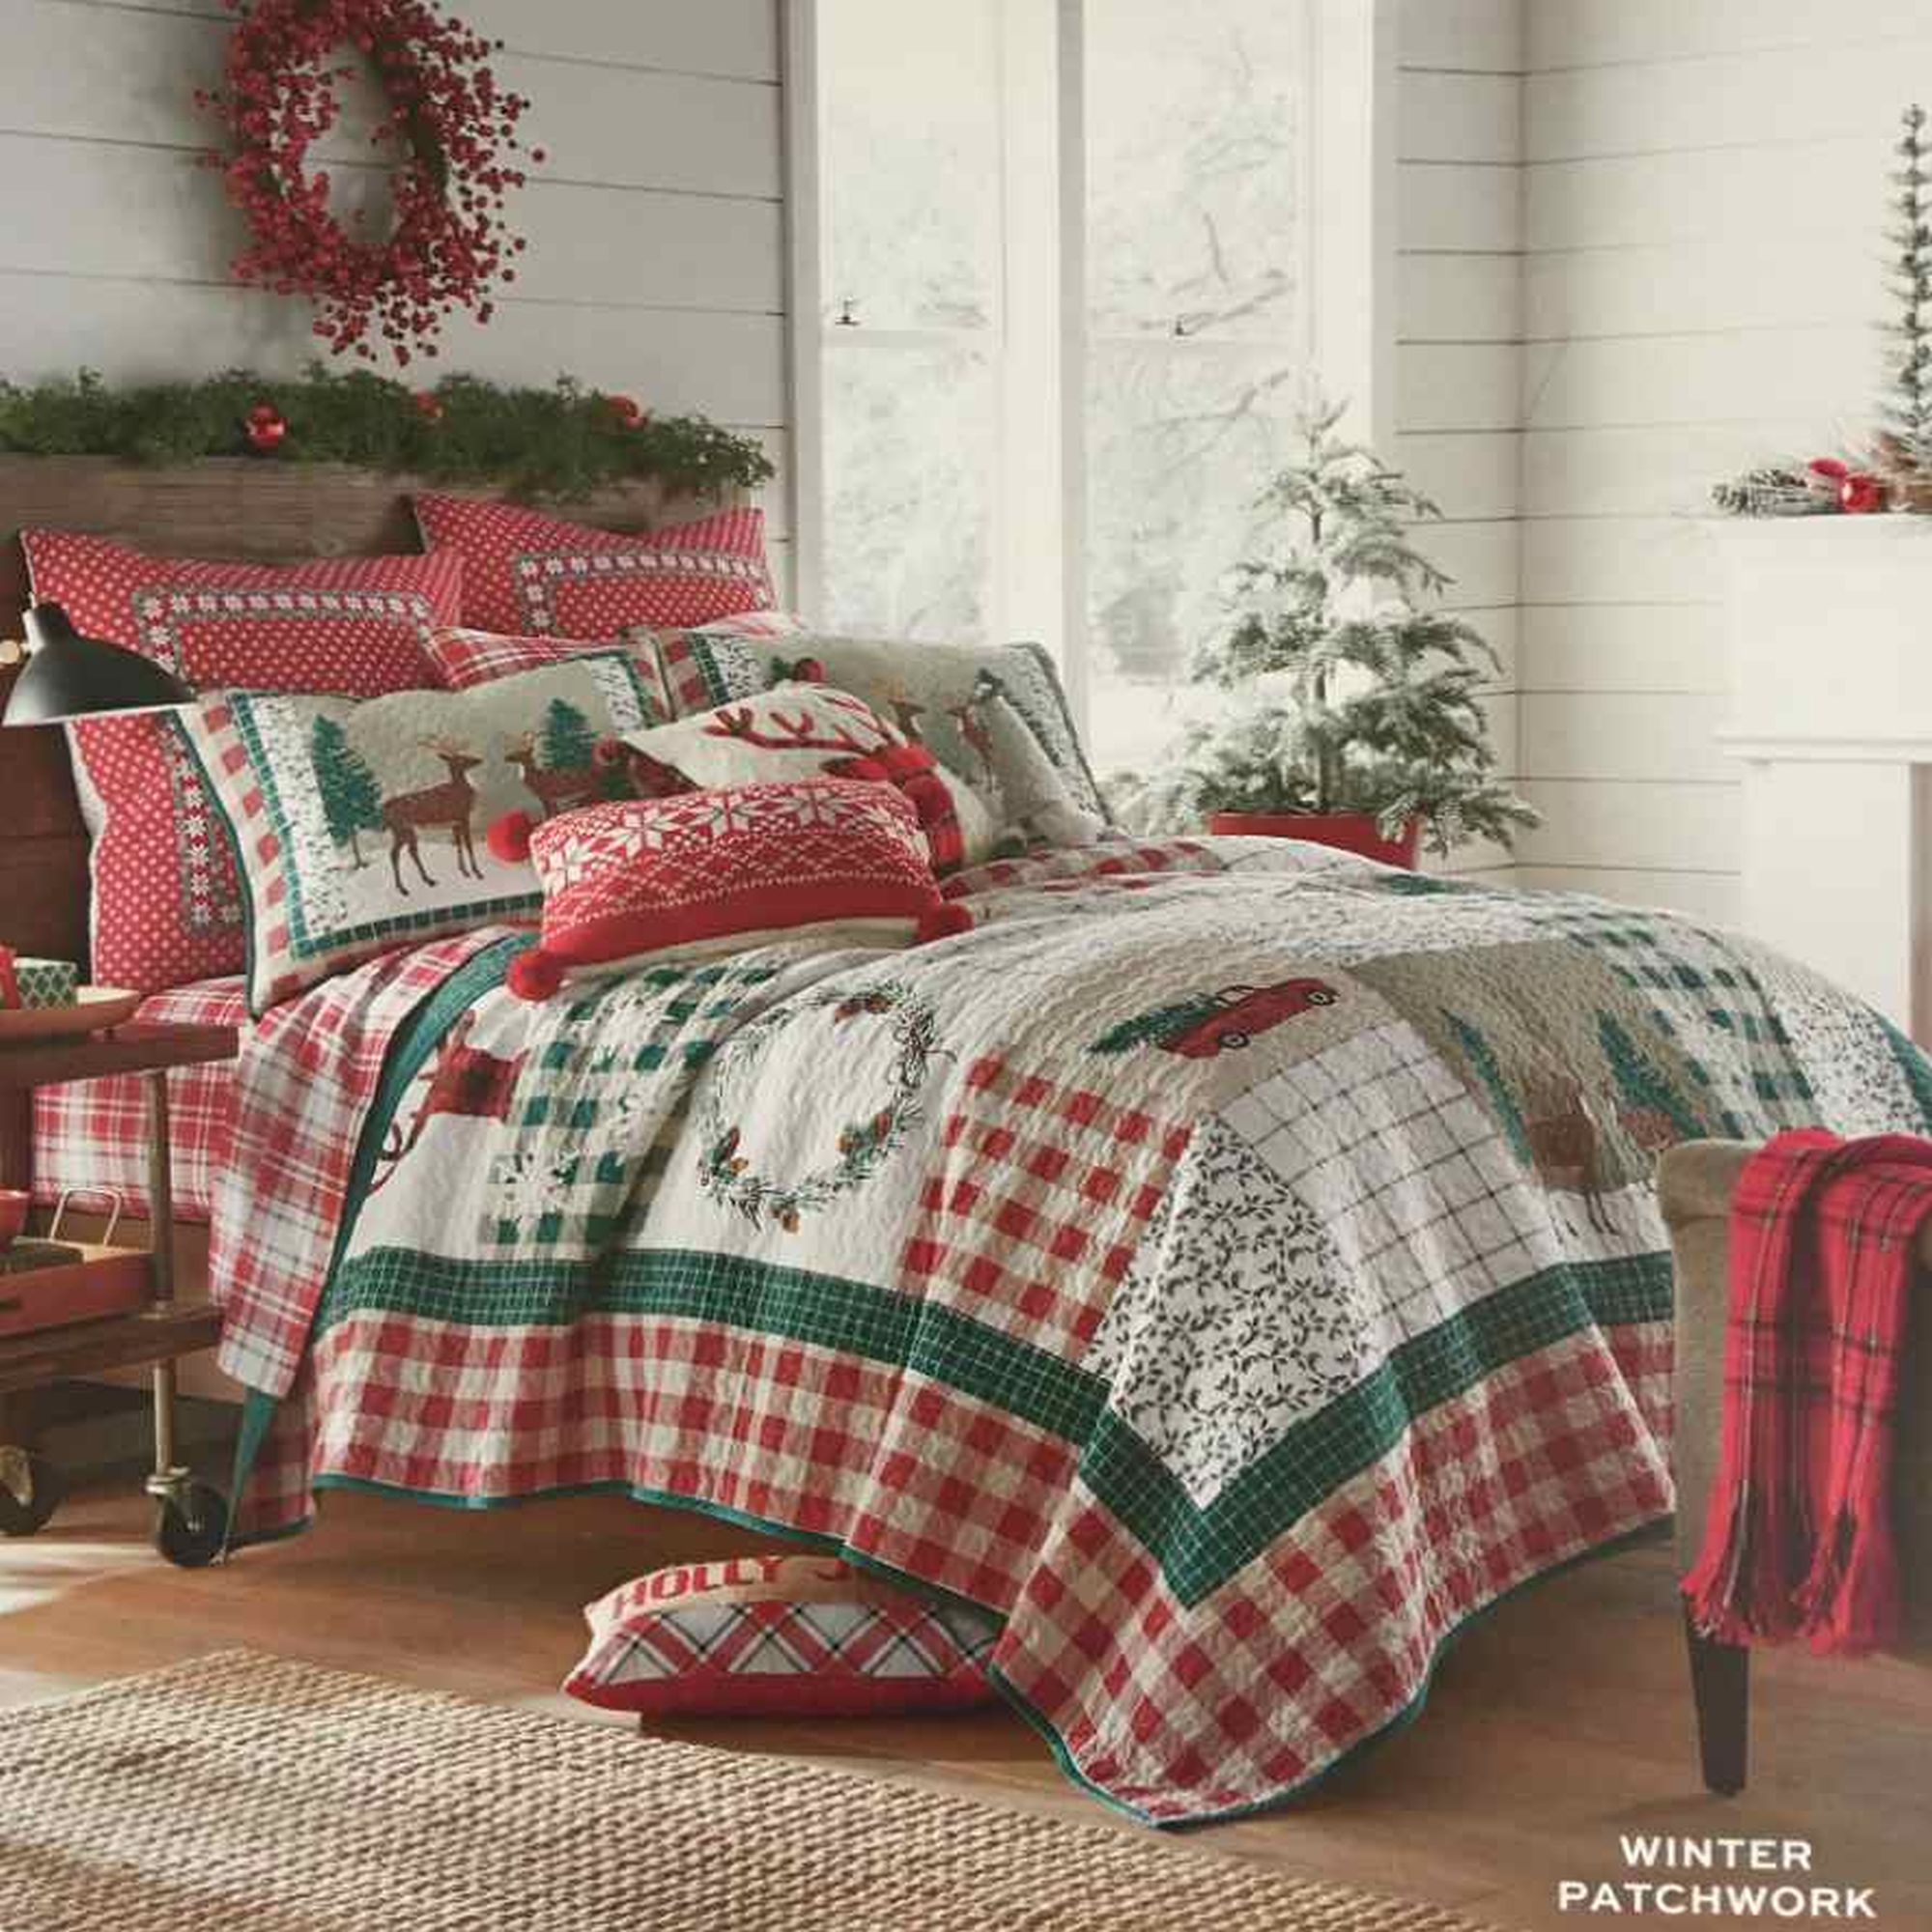 Winter Patchwork Reversible Christmas Lodge Twin Bed Quilt Sham Set 2 Pc Walmart Com Walmart Com